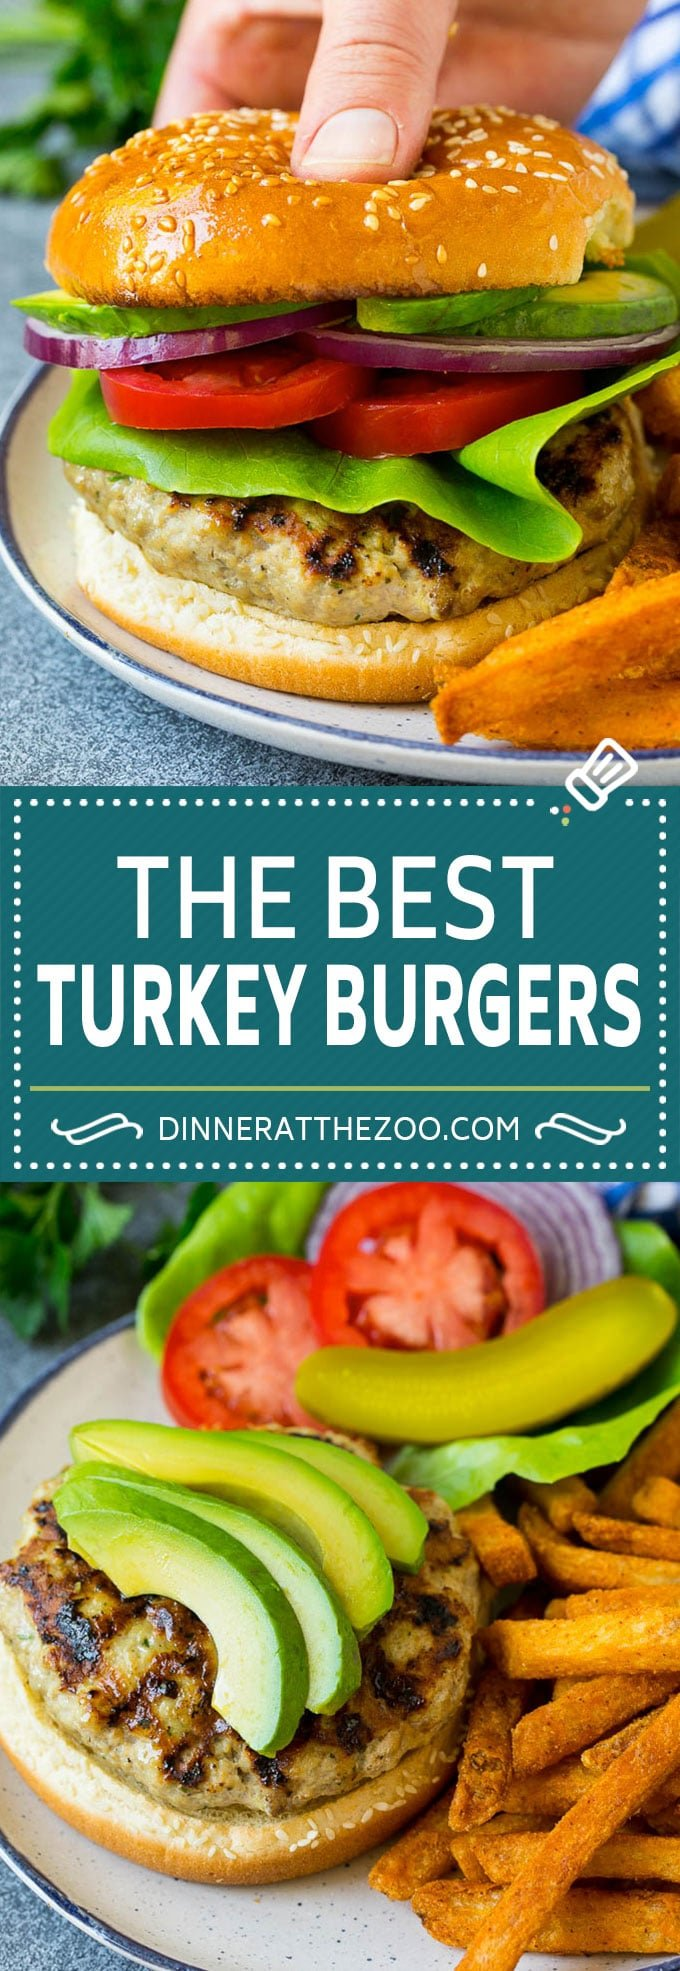 Turkey Burgers Recipe | Grilled Burgers #burger #turkey #dinner #sandwich #dinneratthezoo #grilling